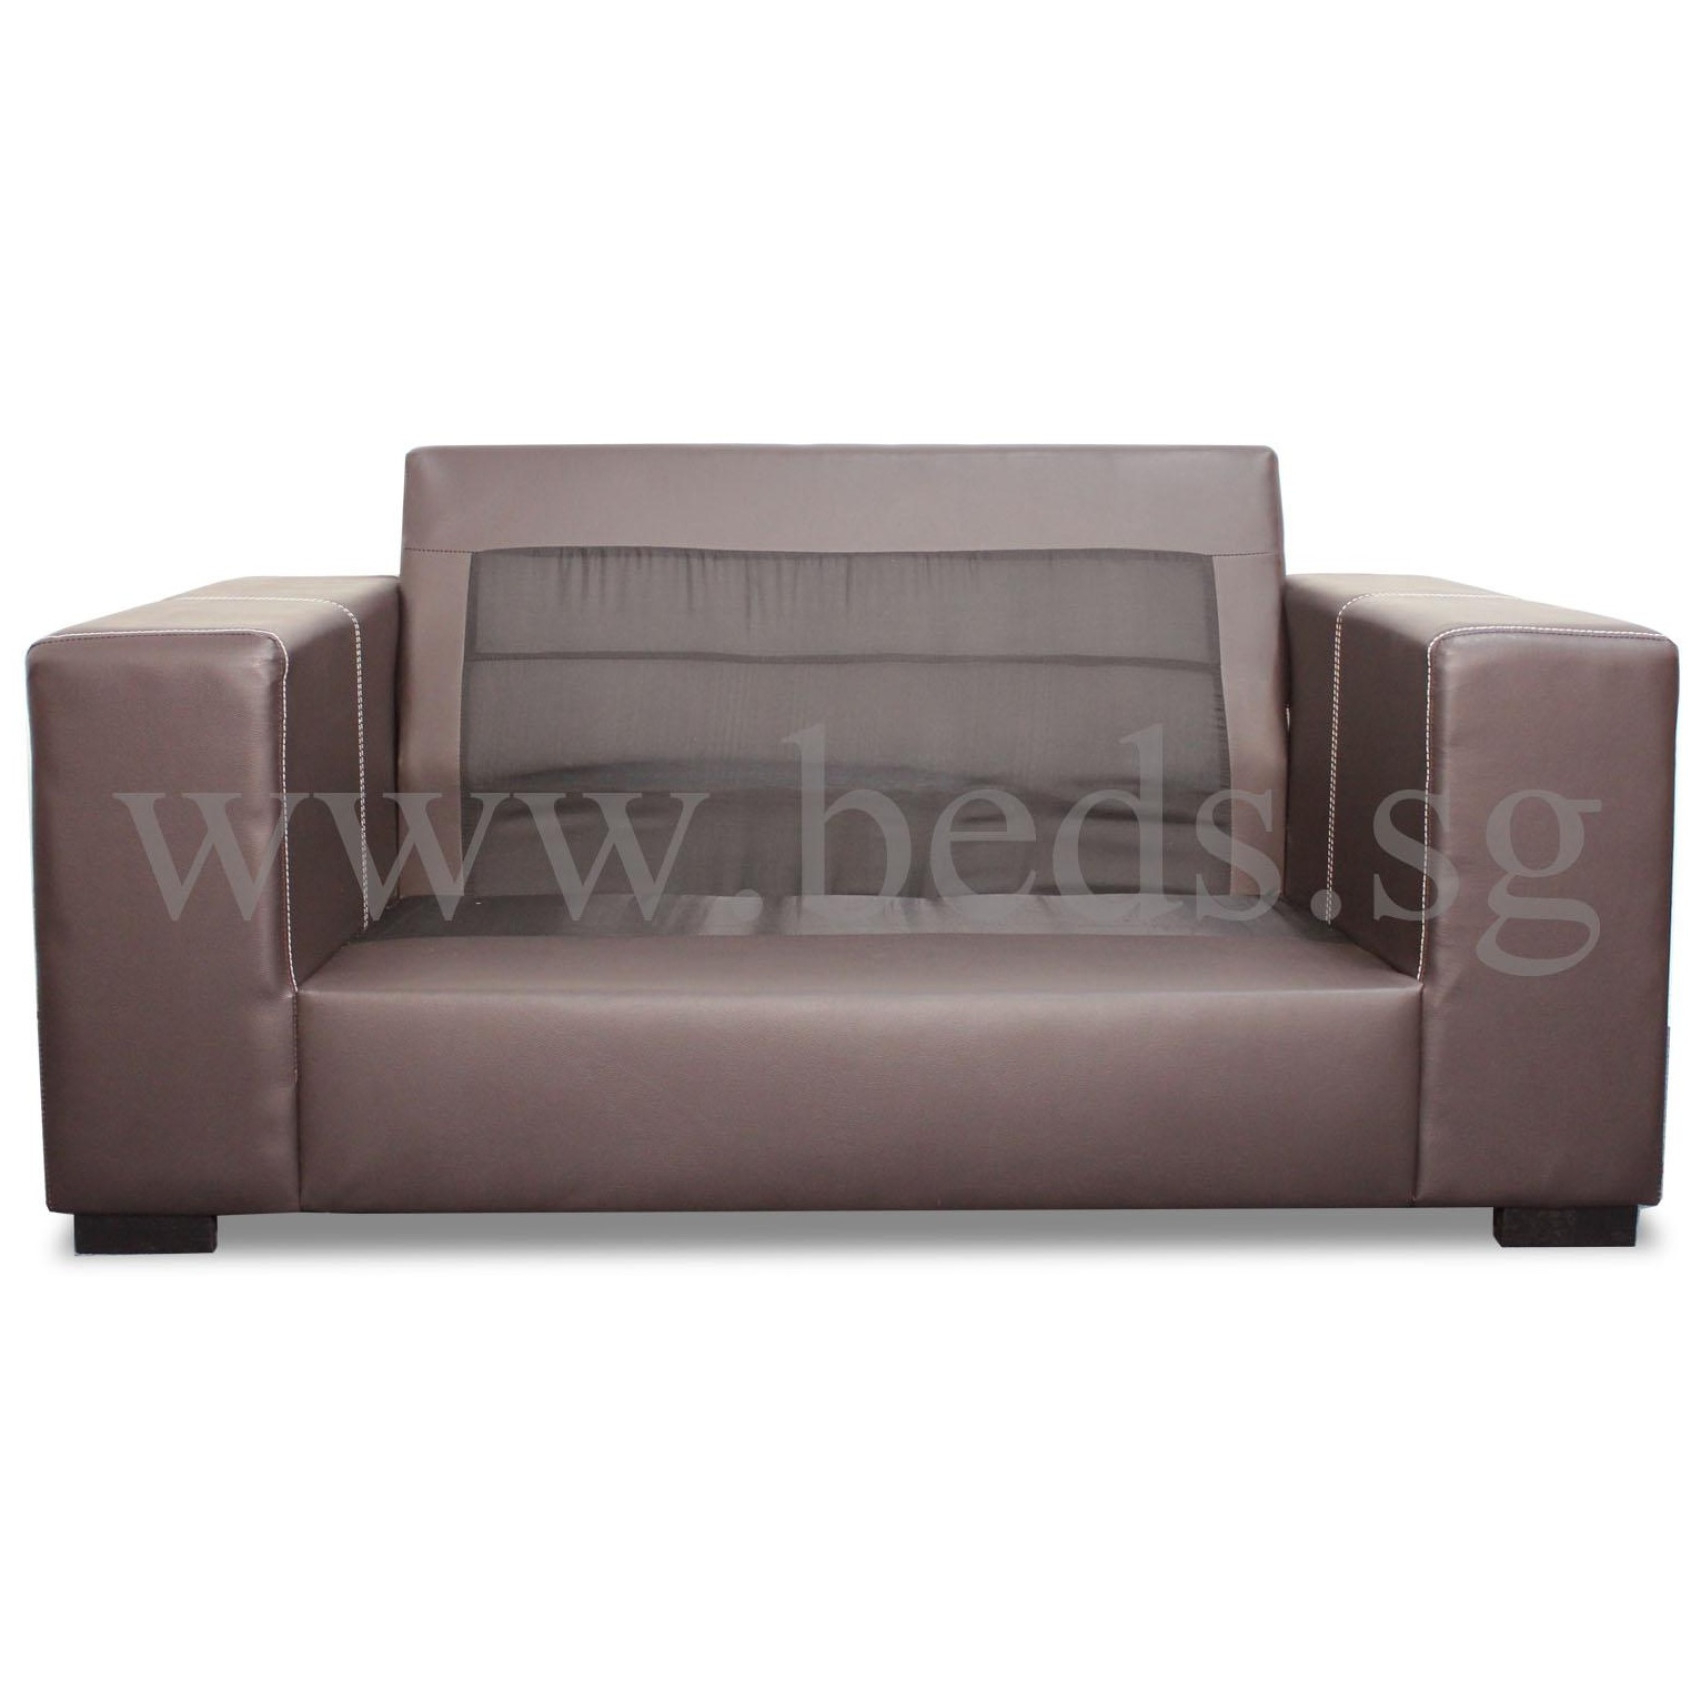 Walter Sofa | Furniture & Home Décor | Fortytwo Intended For Walter Leather Sofa Chairs (Image 24 of 25)